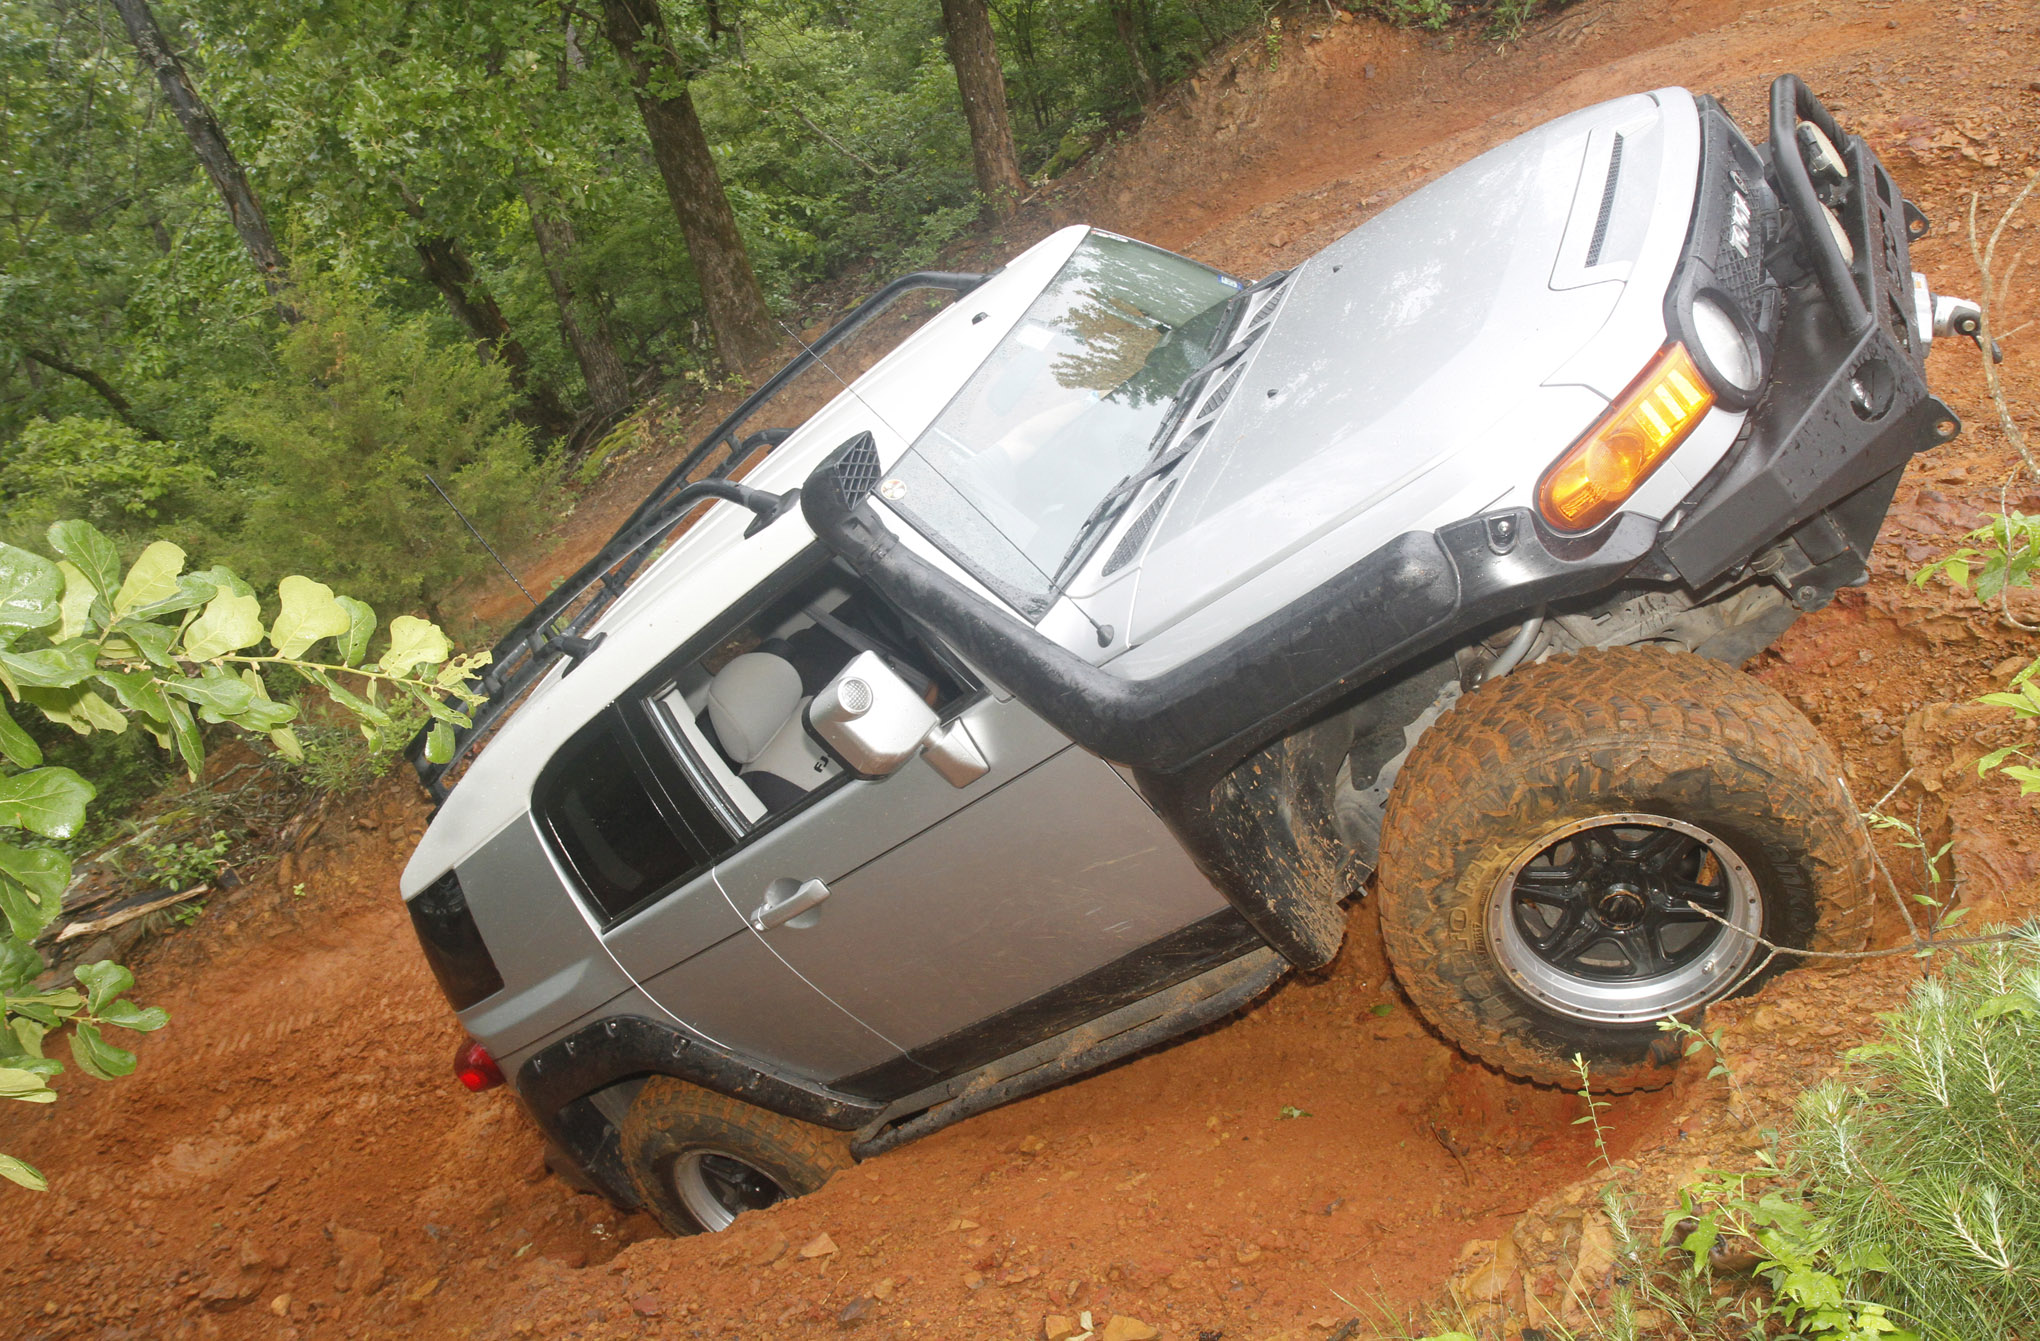 George Stanley climbs up one of the Jeep Eater trail exits. His 2008 FJ Cruiser is much more capable than stock with All-Pro Off Road A-arms, Walker Evans coilovers, 4.88 gears, and 35-inch mud-terrain tires.